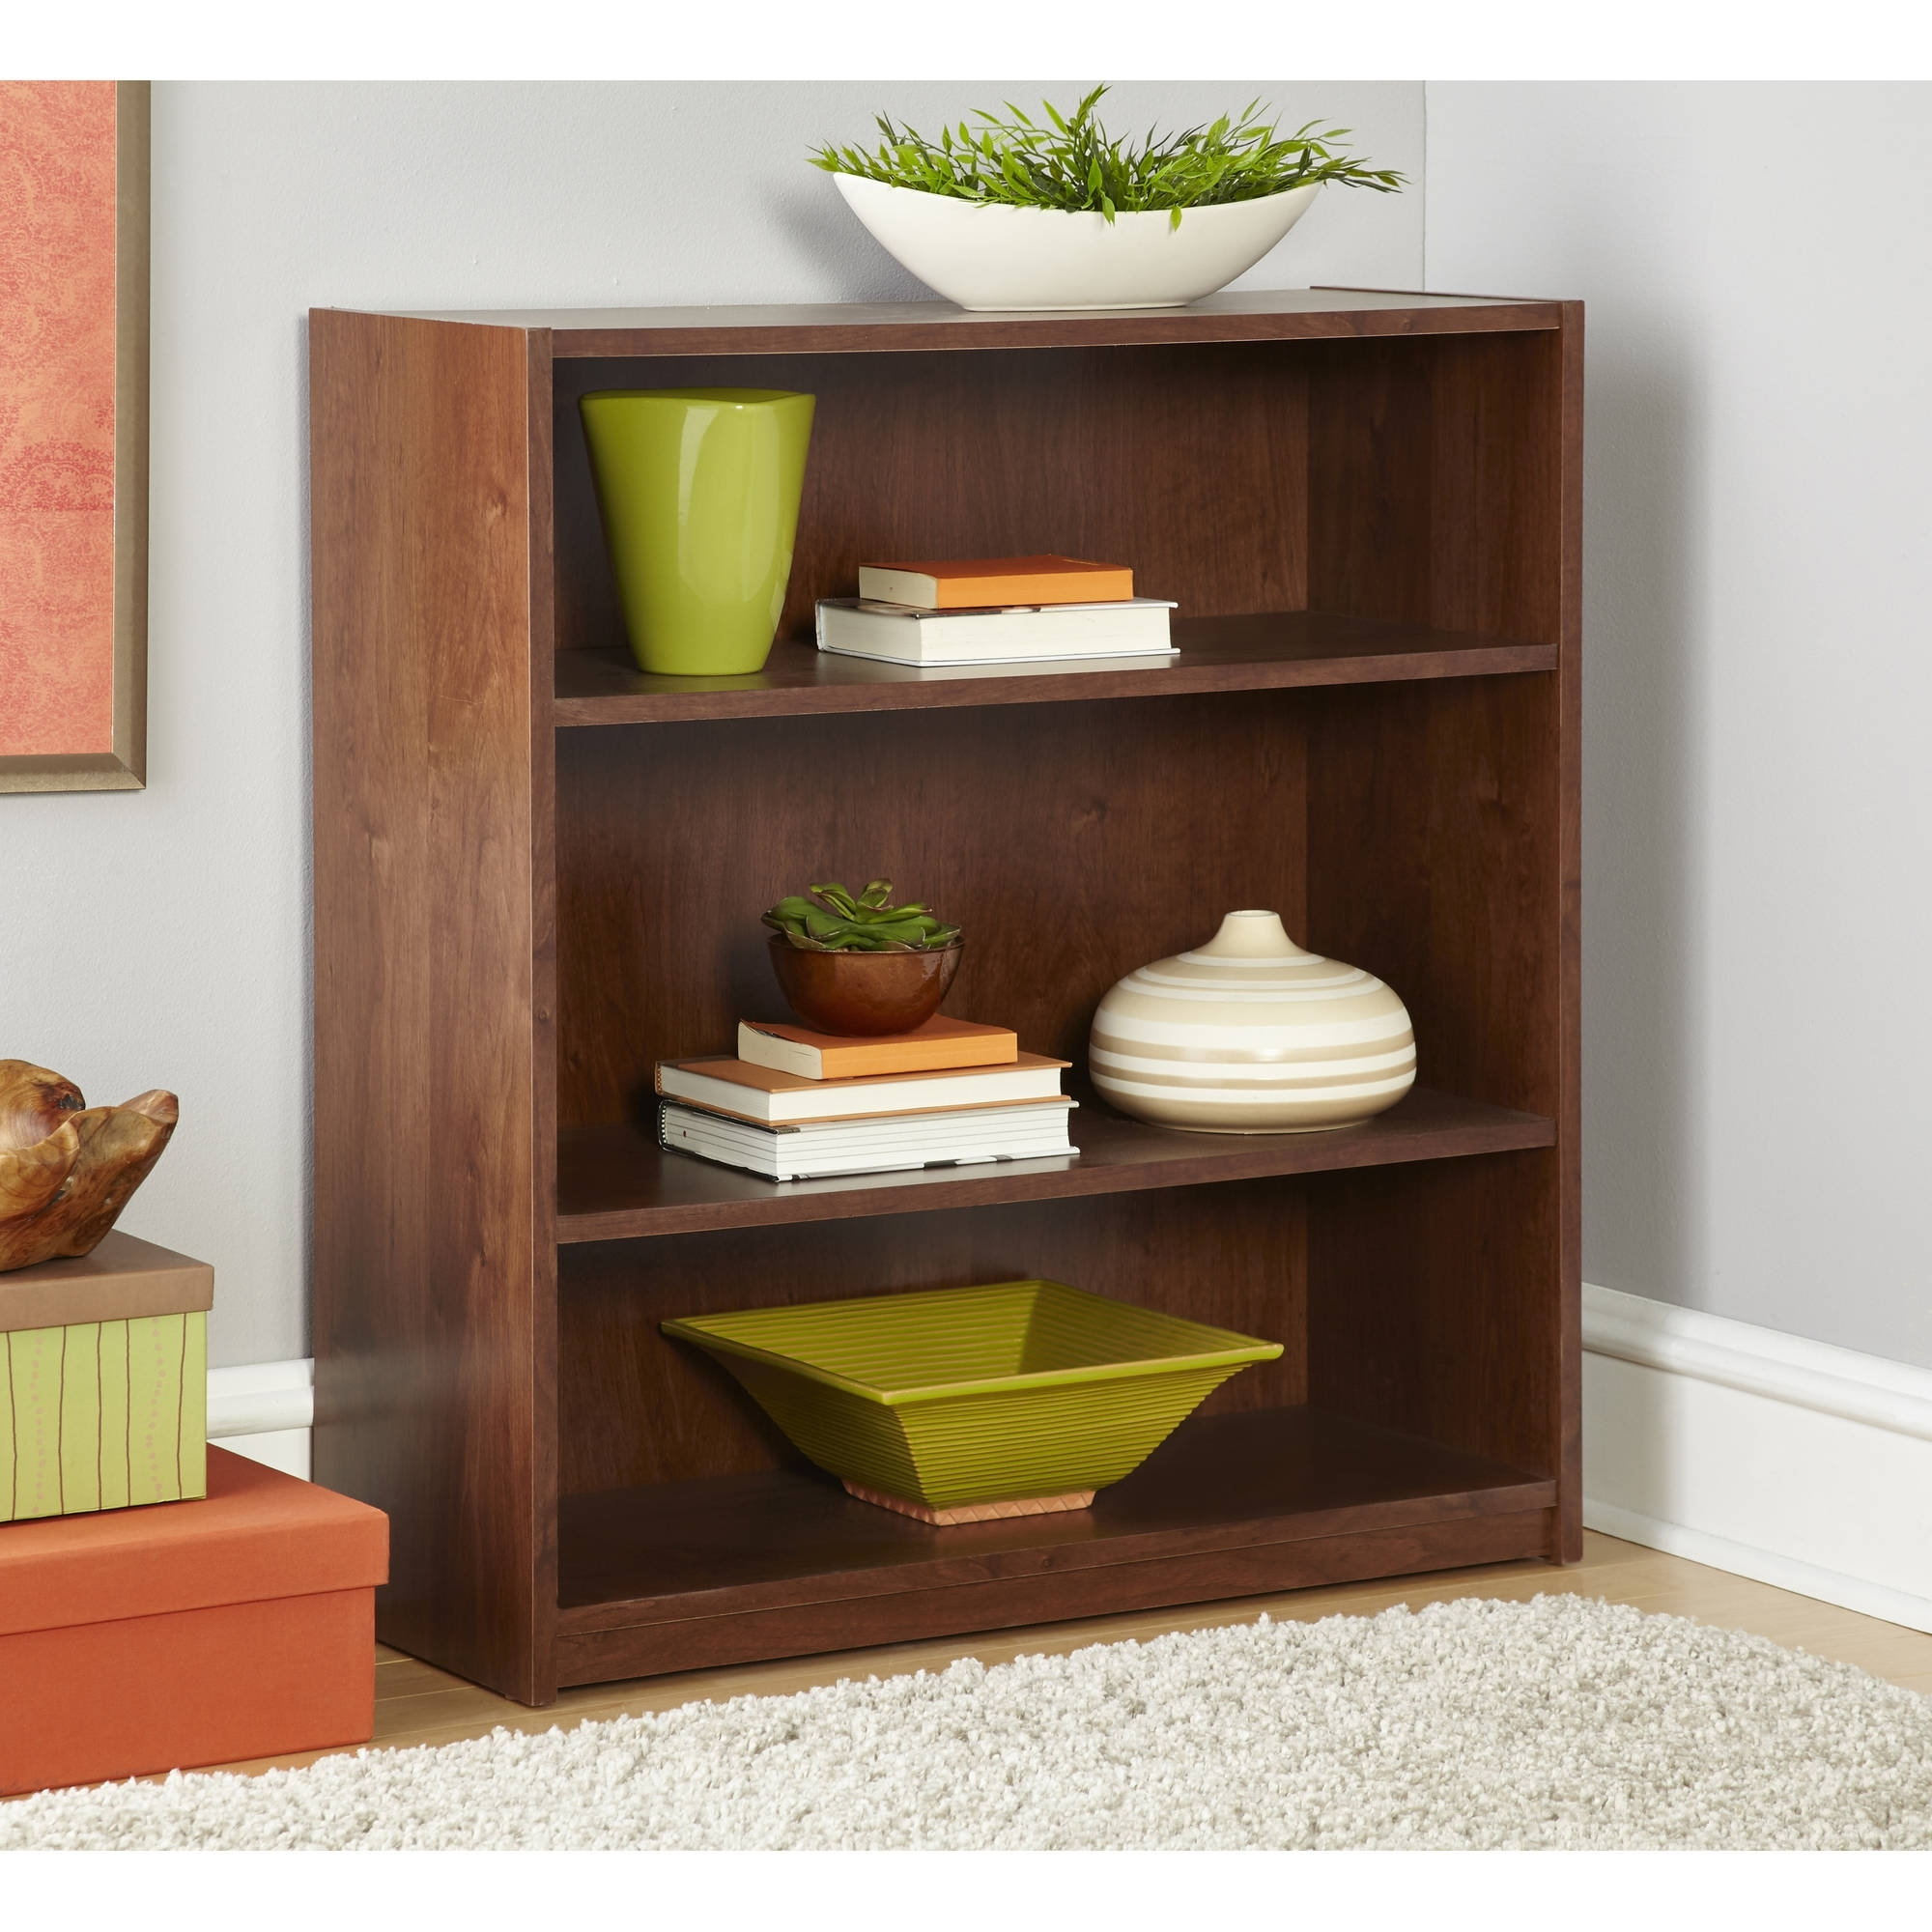 2017 Mainstays 3 Shelf Bookcase In Alder Color – Walmart With Mainstays 3 Shelf Bookcases (View 1 of 15)